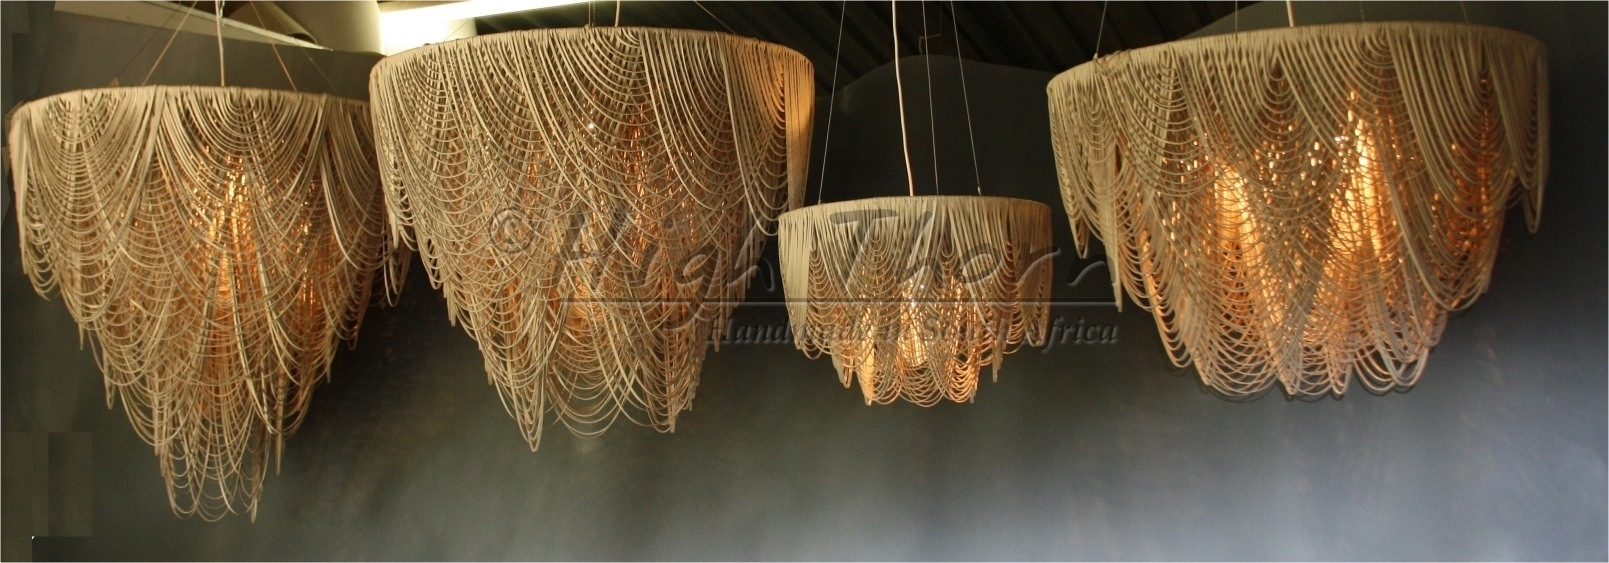 High Thorn Handmade In South Africa Lighting Furniture Home In Leather Chandeliers (View 6 of 25)